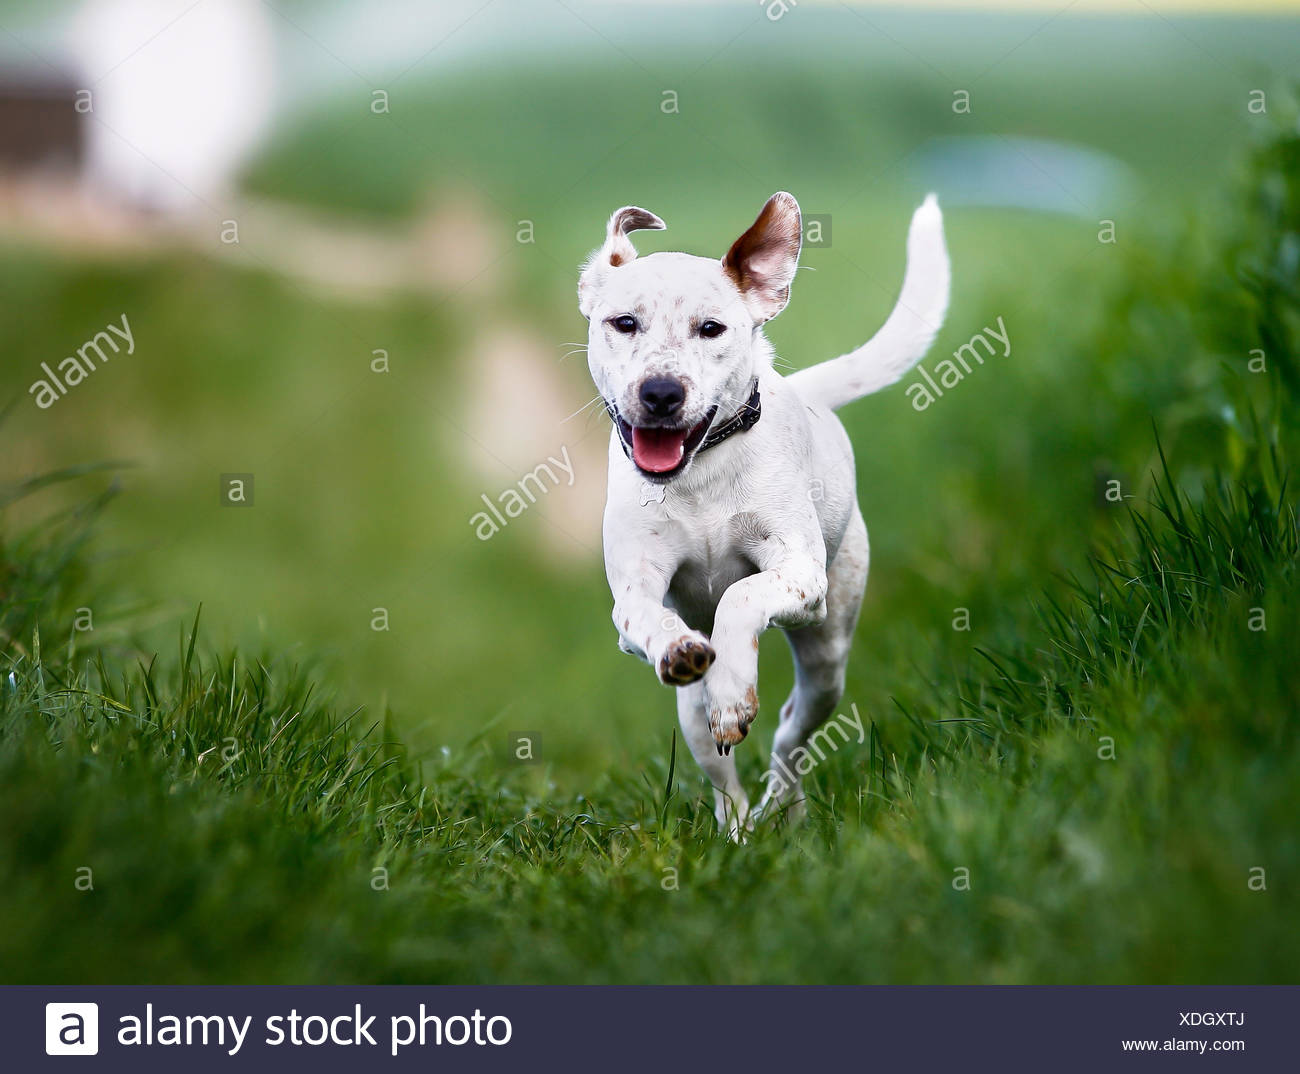 Shot of purebred dog. Taken outside on a sunny summer day. - Stock Image